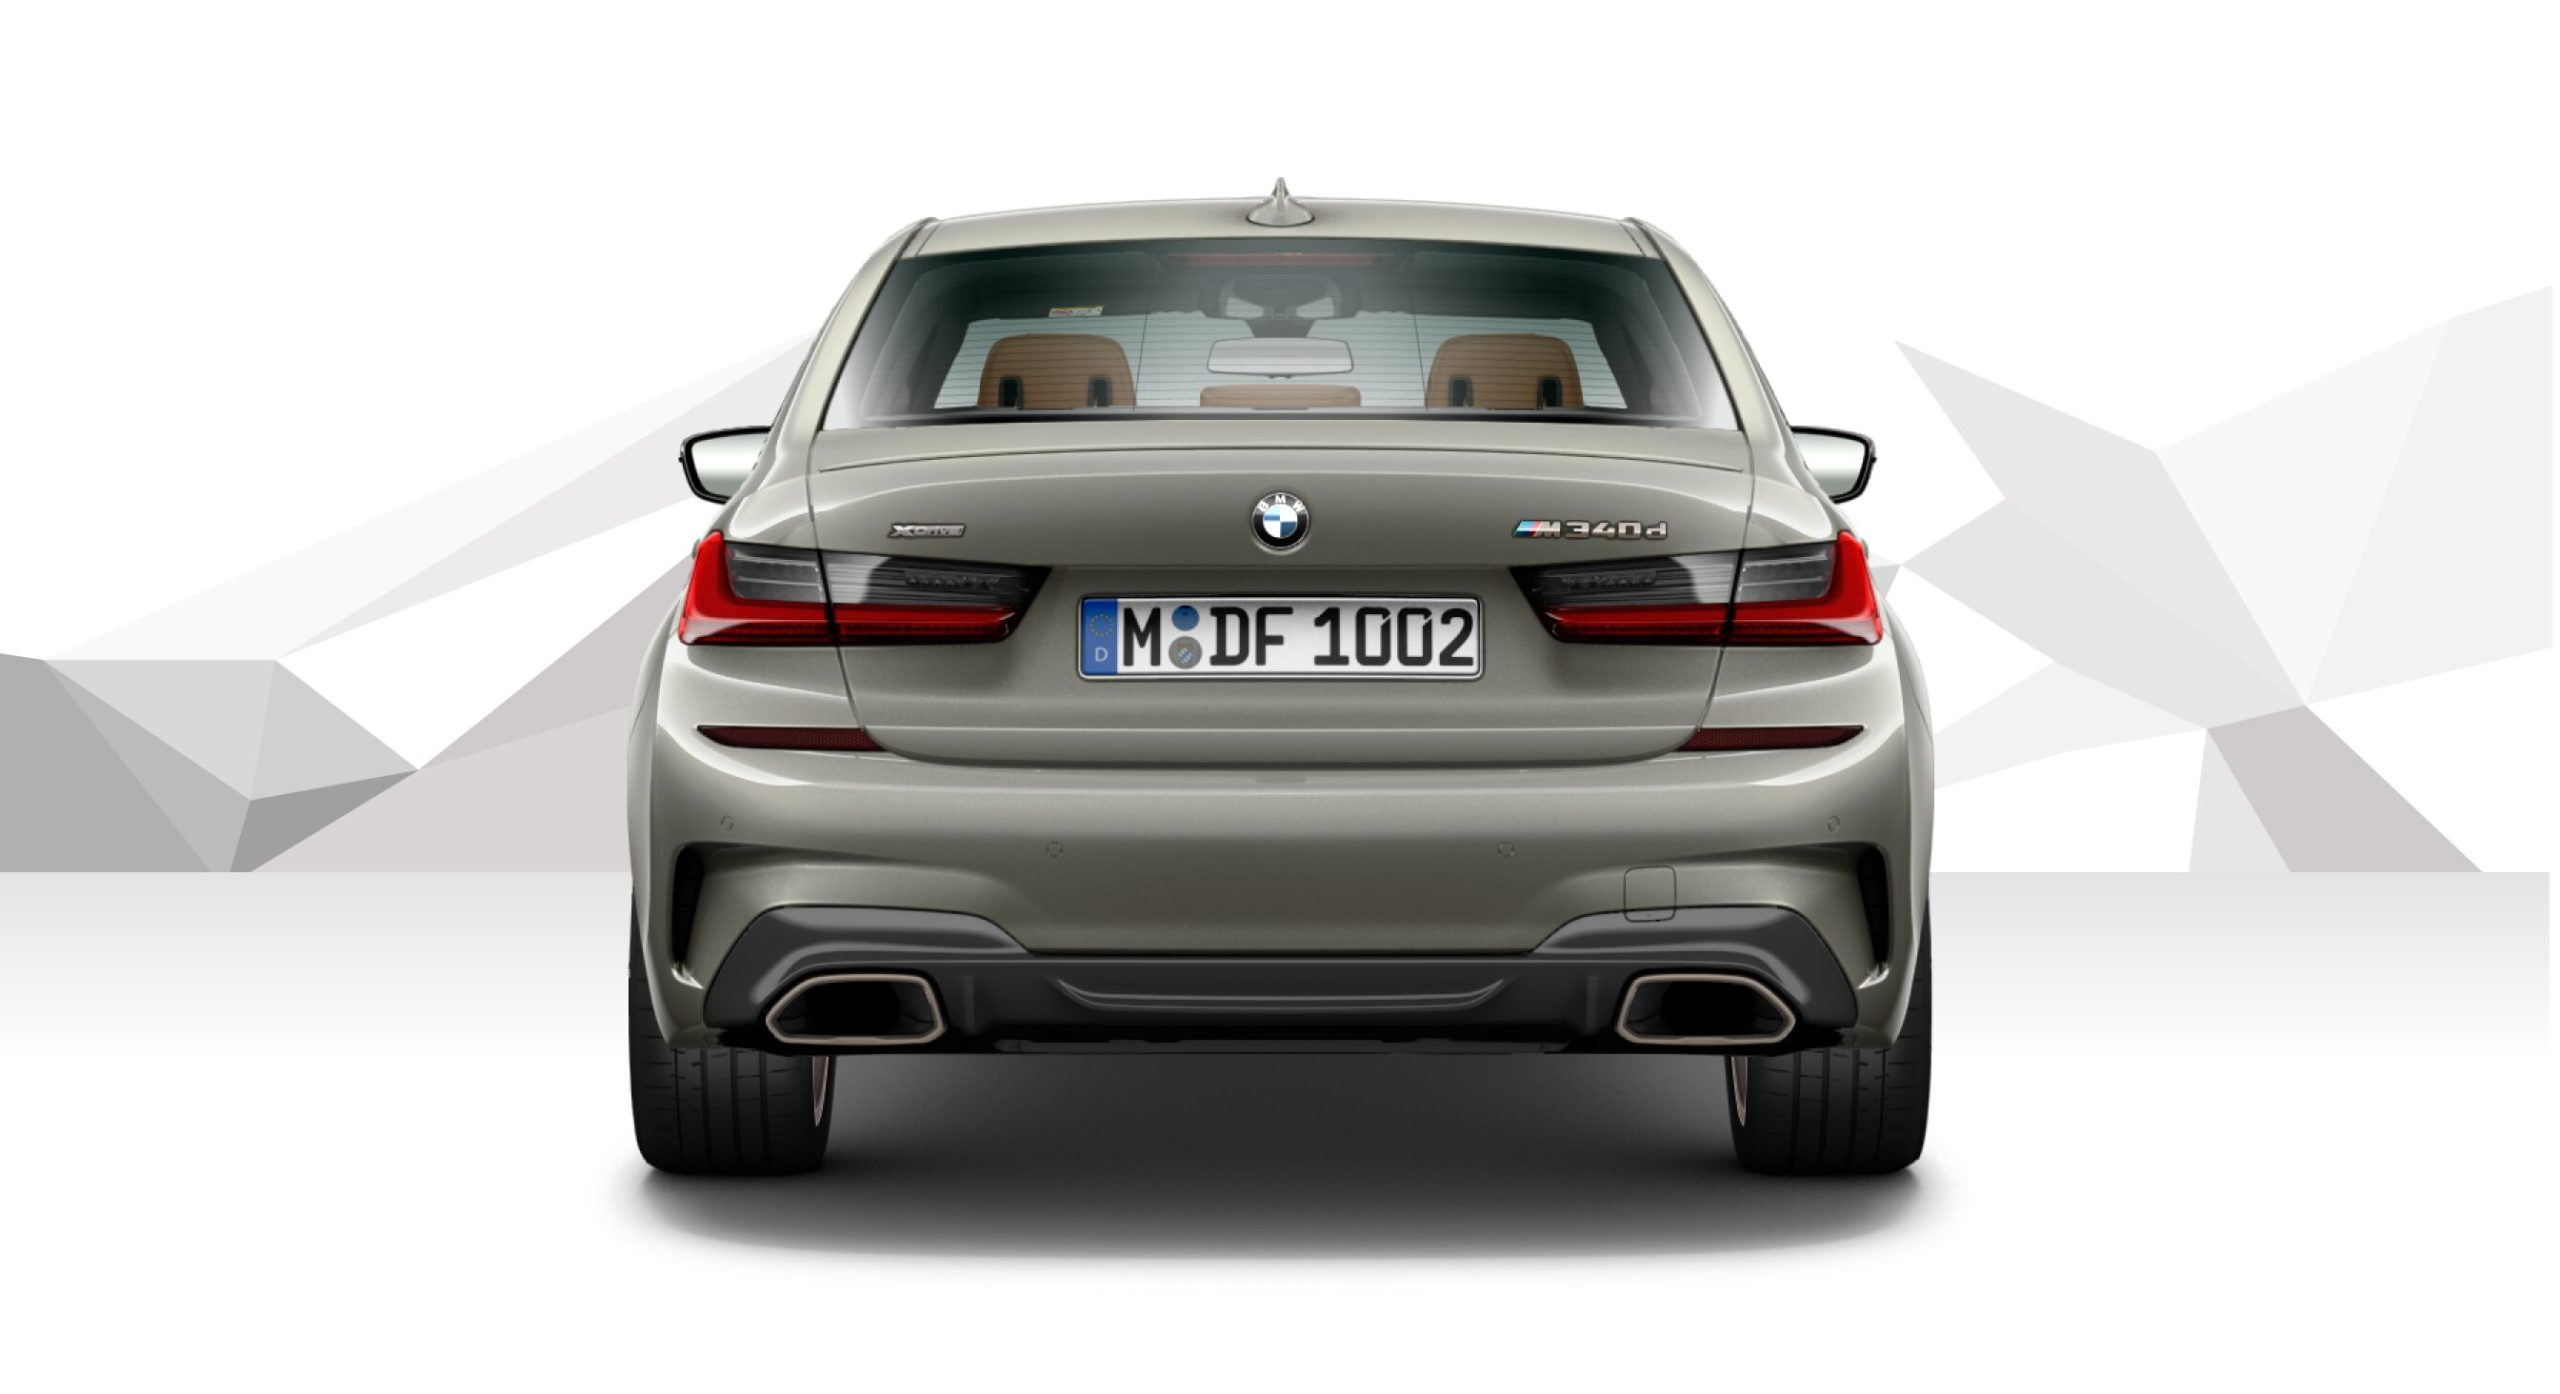 BMW M340d xDrive shows up on the Luxembourg site configurator